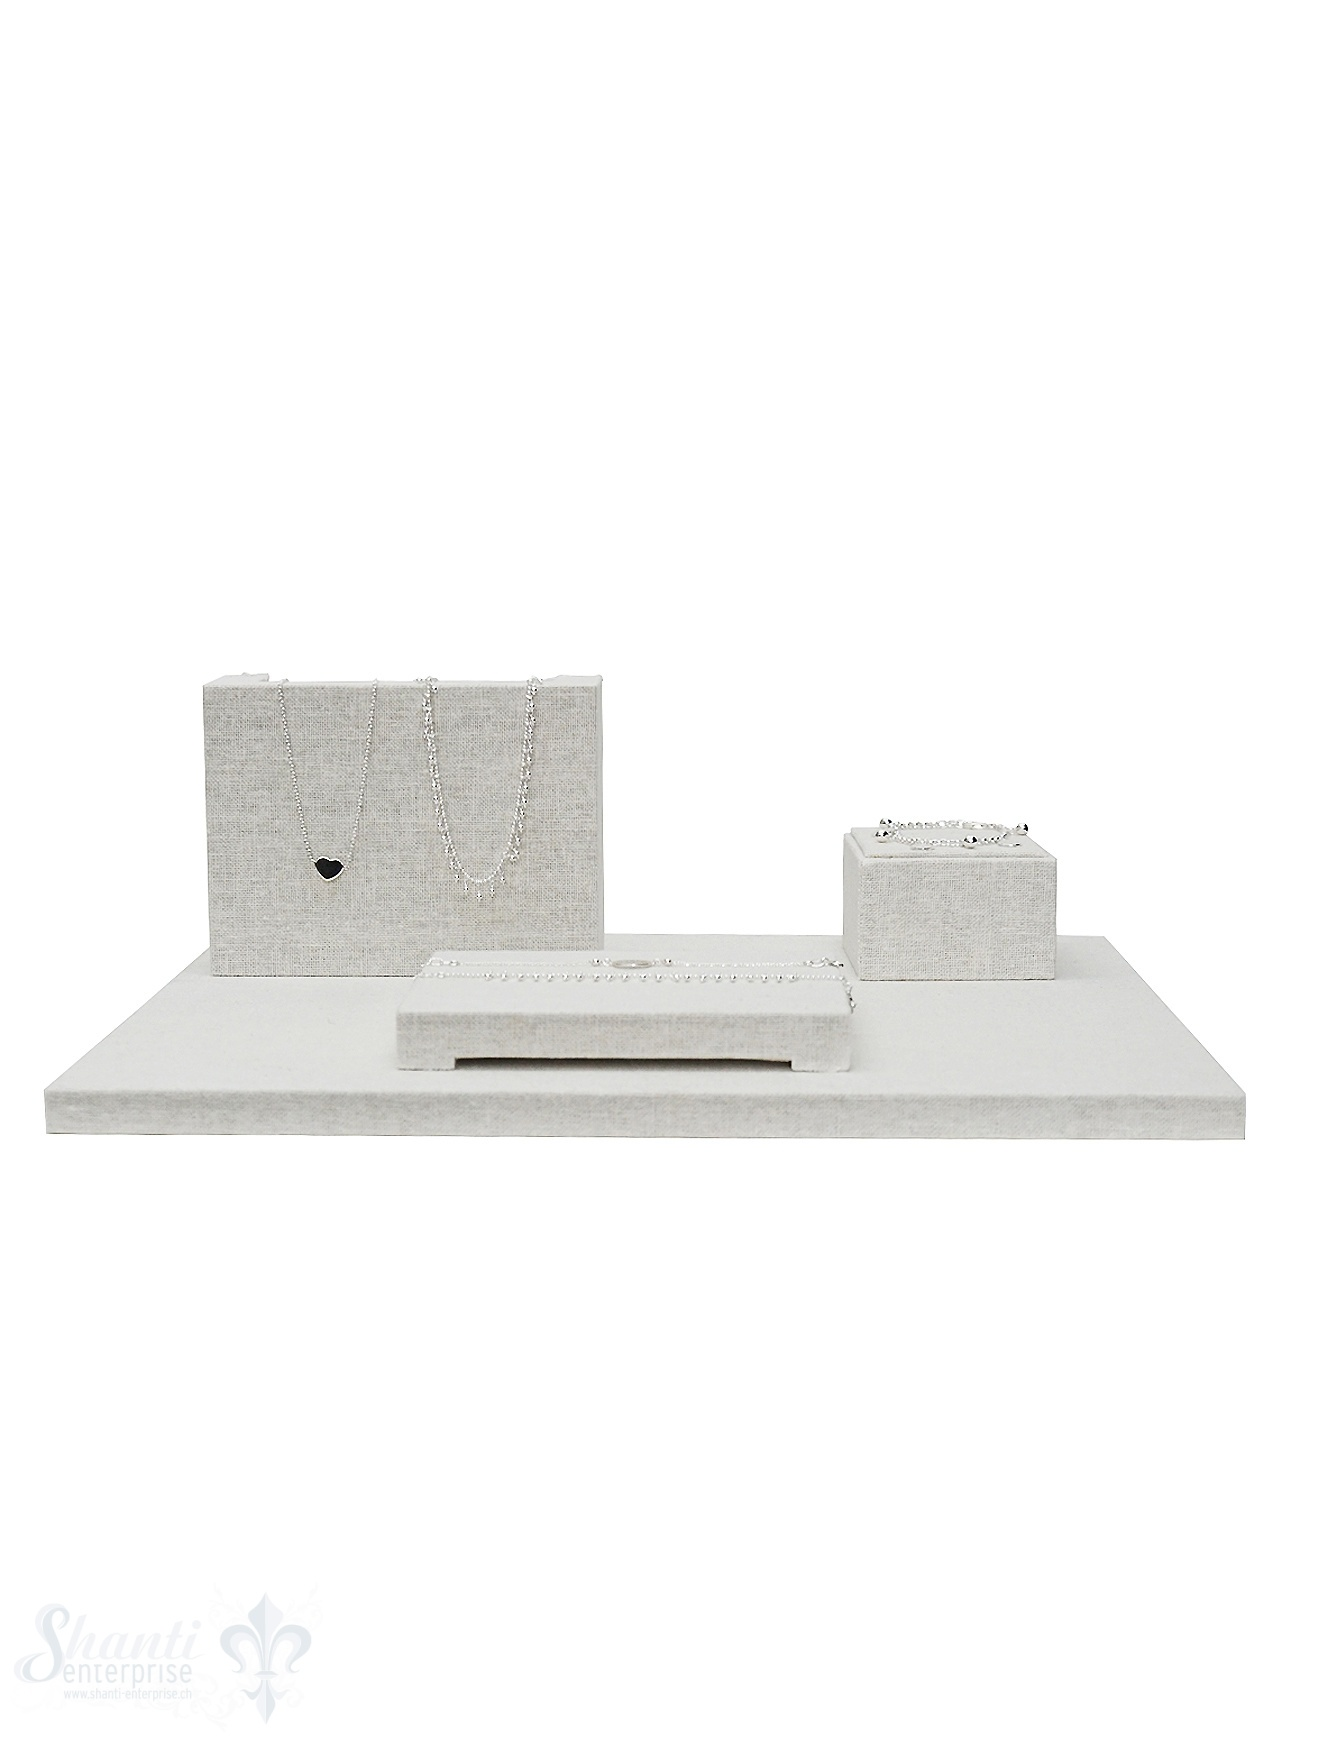 Display Leinen Brett-Set weiss 40x30x1.5cm Set mit 3 Stk Display 16x12x4.5cm,.8x8x5 cm, 15.5x11.5x2 cm